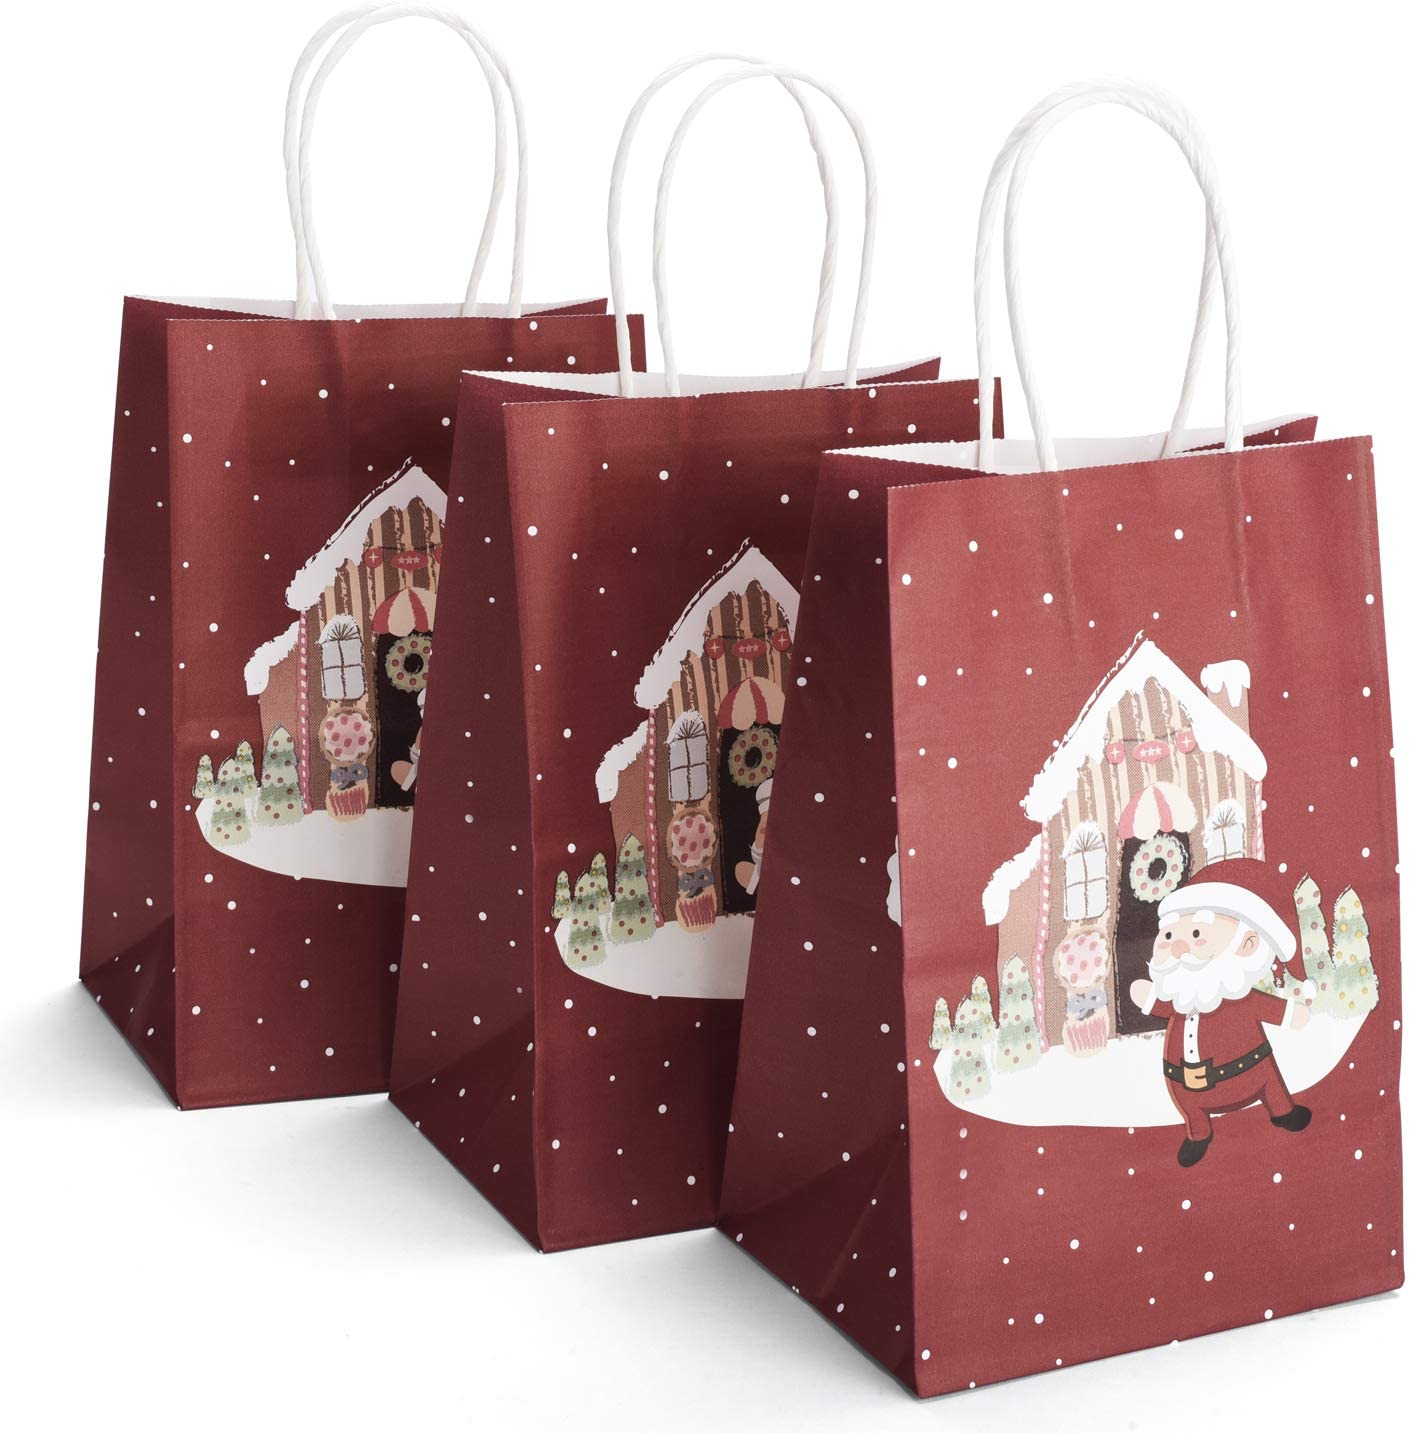 GSSUSA Christmas Paper Bags 5.25